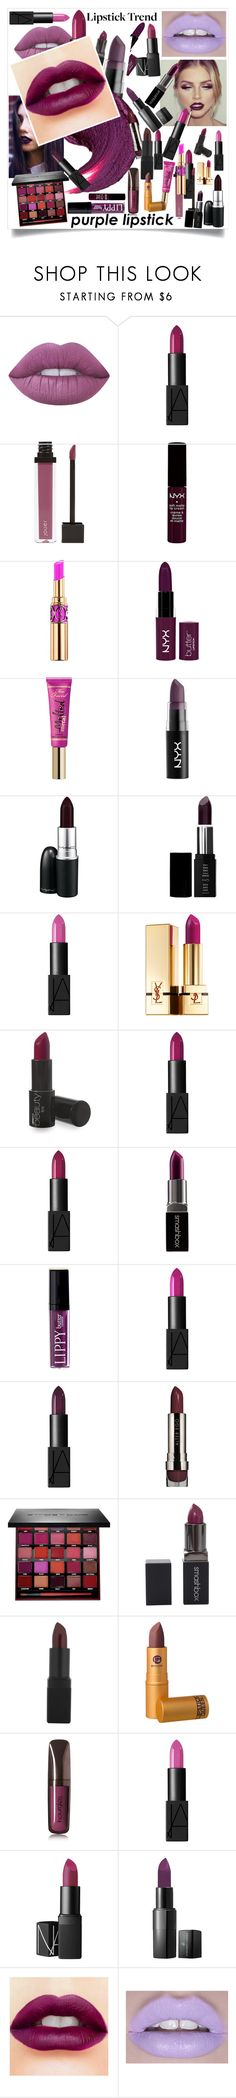 """Purple lipstick"" by lseed87 ❤ liked on Polyvore featuring beauty, Lime Crime, NARS Cosmetics, Jouer, NYX, Yves Saint Laurent, Too Faced Cosmetics, MAC Cosmetics, Lord & Berry and Smashbox"